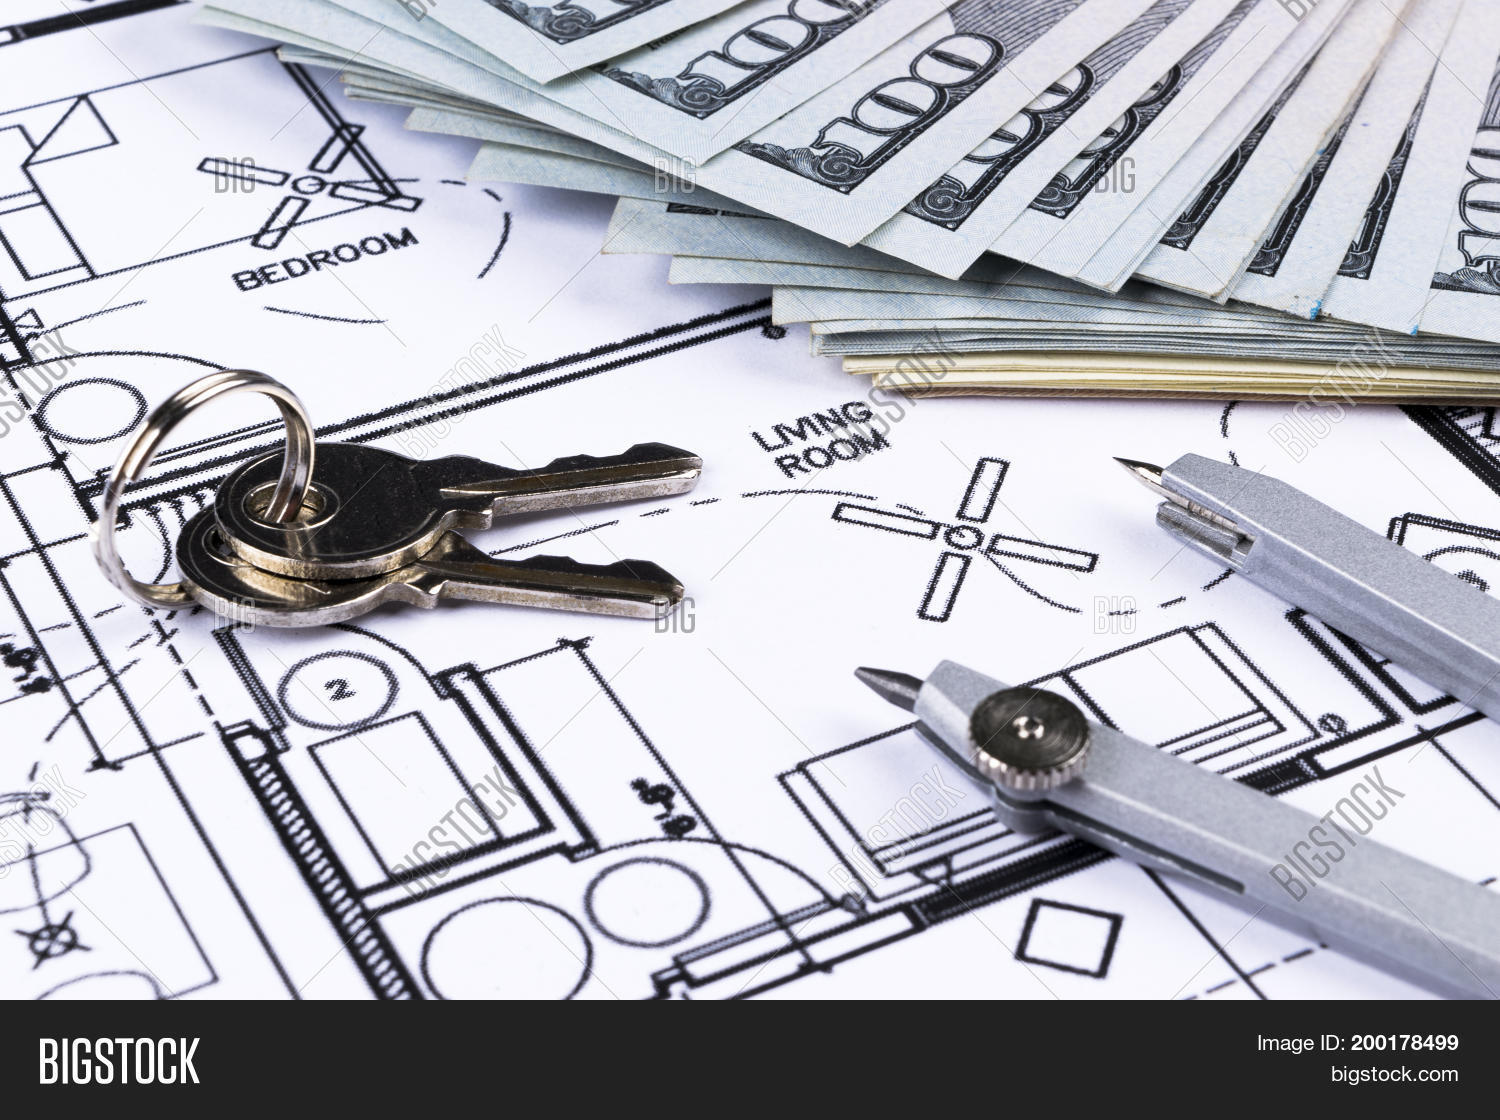 Stack money key lying image photo free trial bigstock stack of money with key lying on construction drawing of house blueprint house plan concept money malvernweather Images